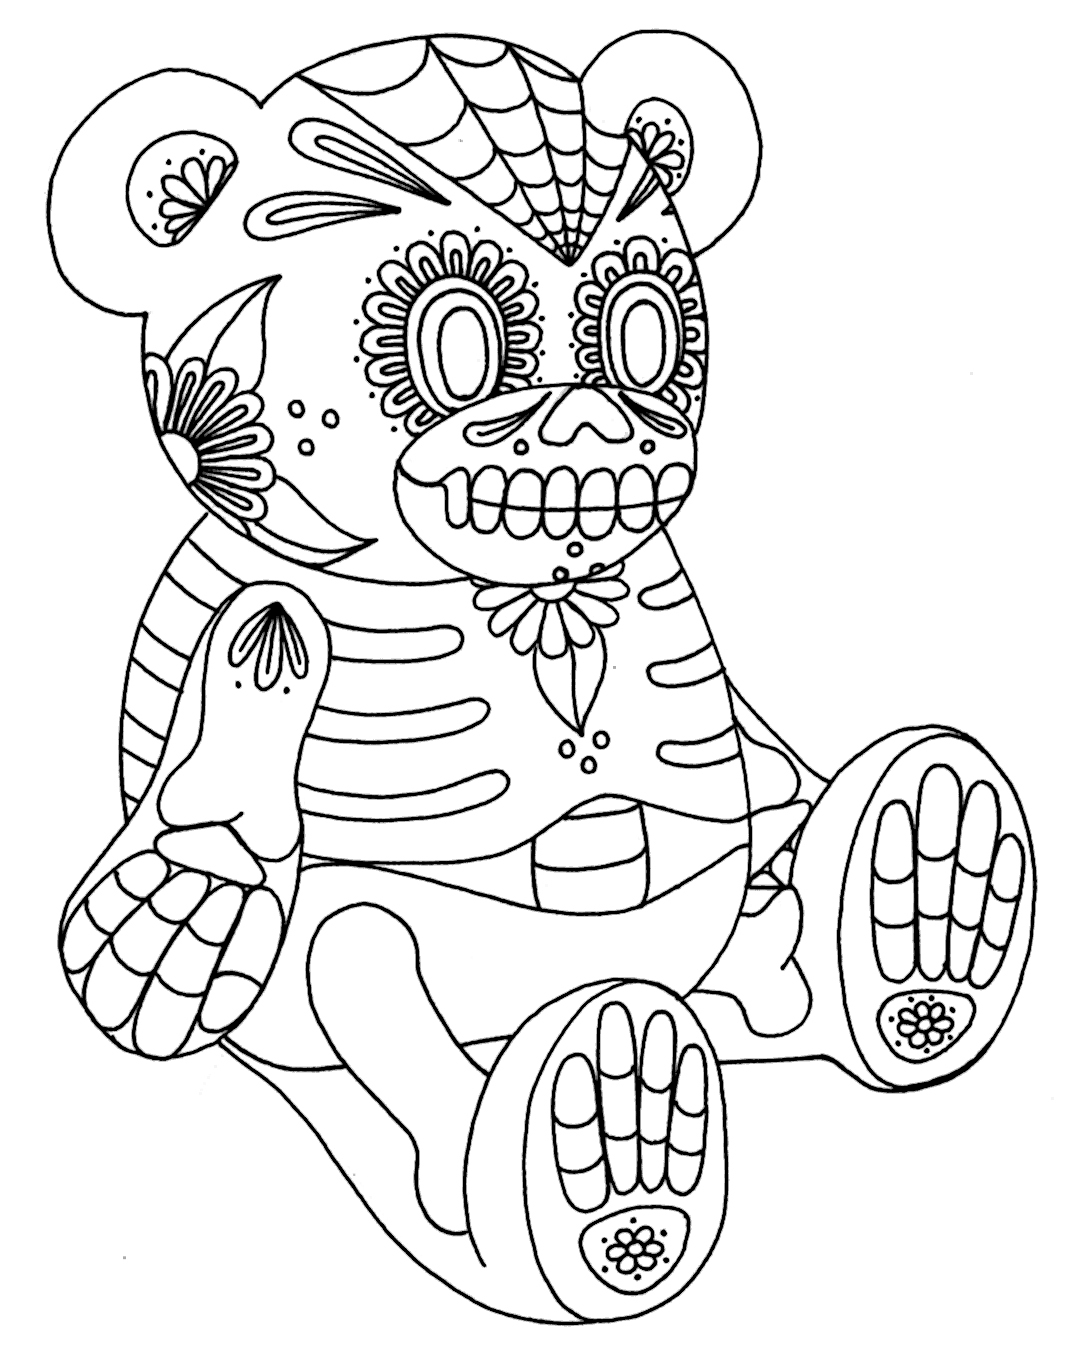 Free Coloring Pages Of Sugar Skull Teddy Bear Skulls Coloring Pages